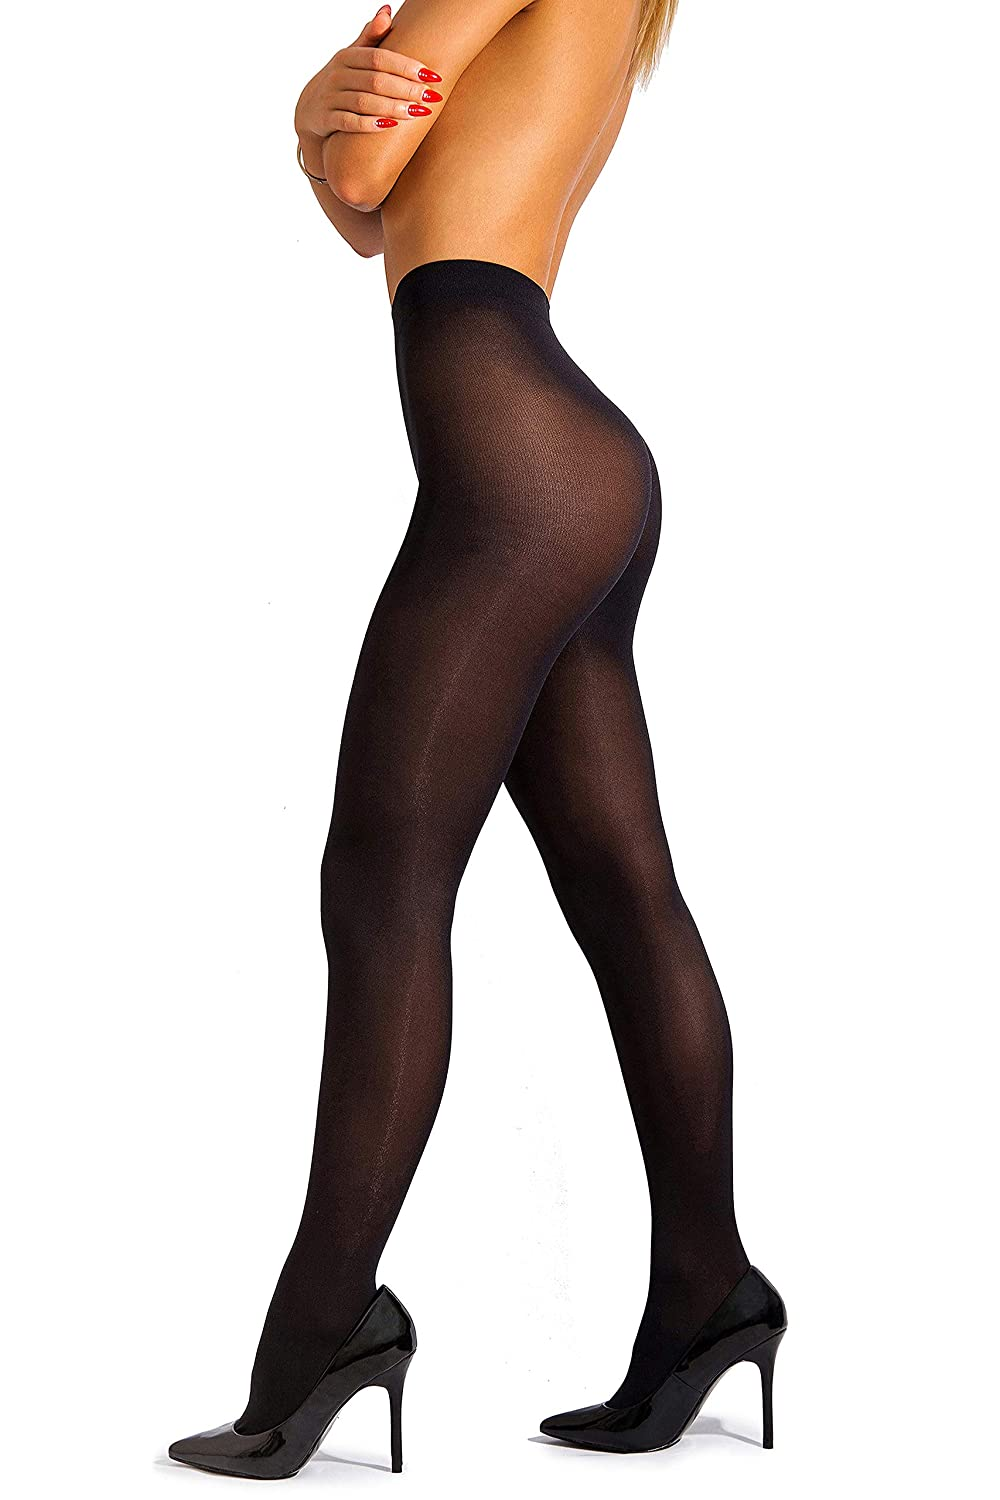 1f2f1b4a1d7 Top 10 wholesale Hosiery Opaque Tights - Chinabrands.com